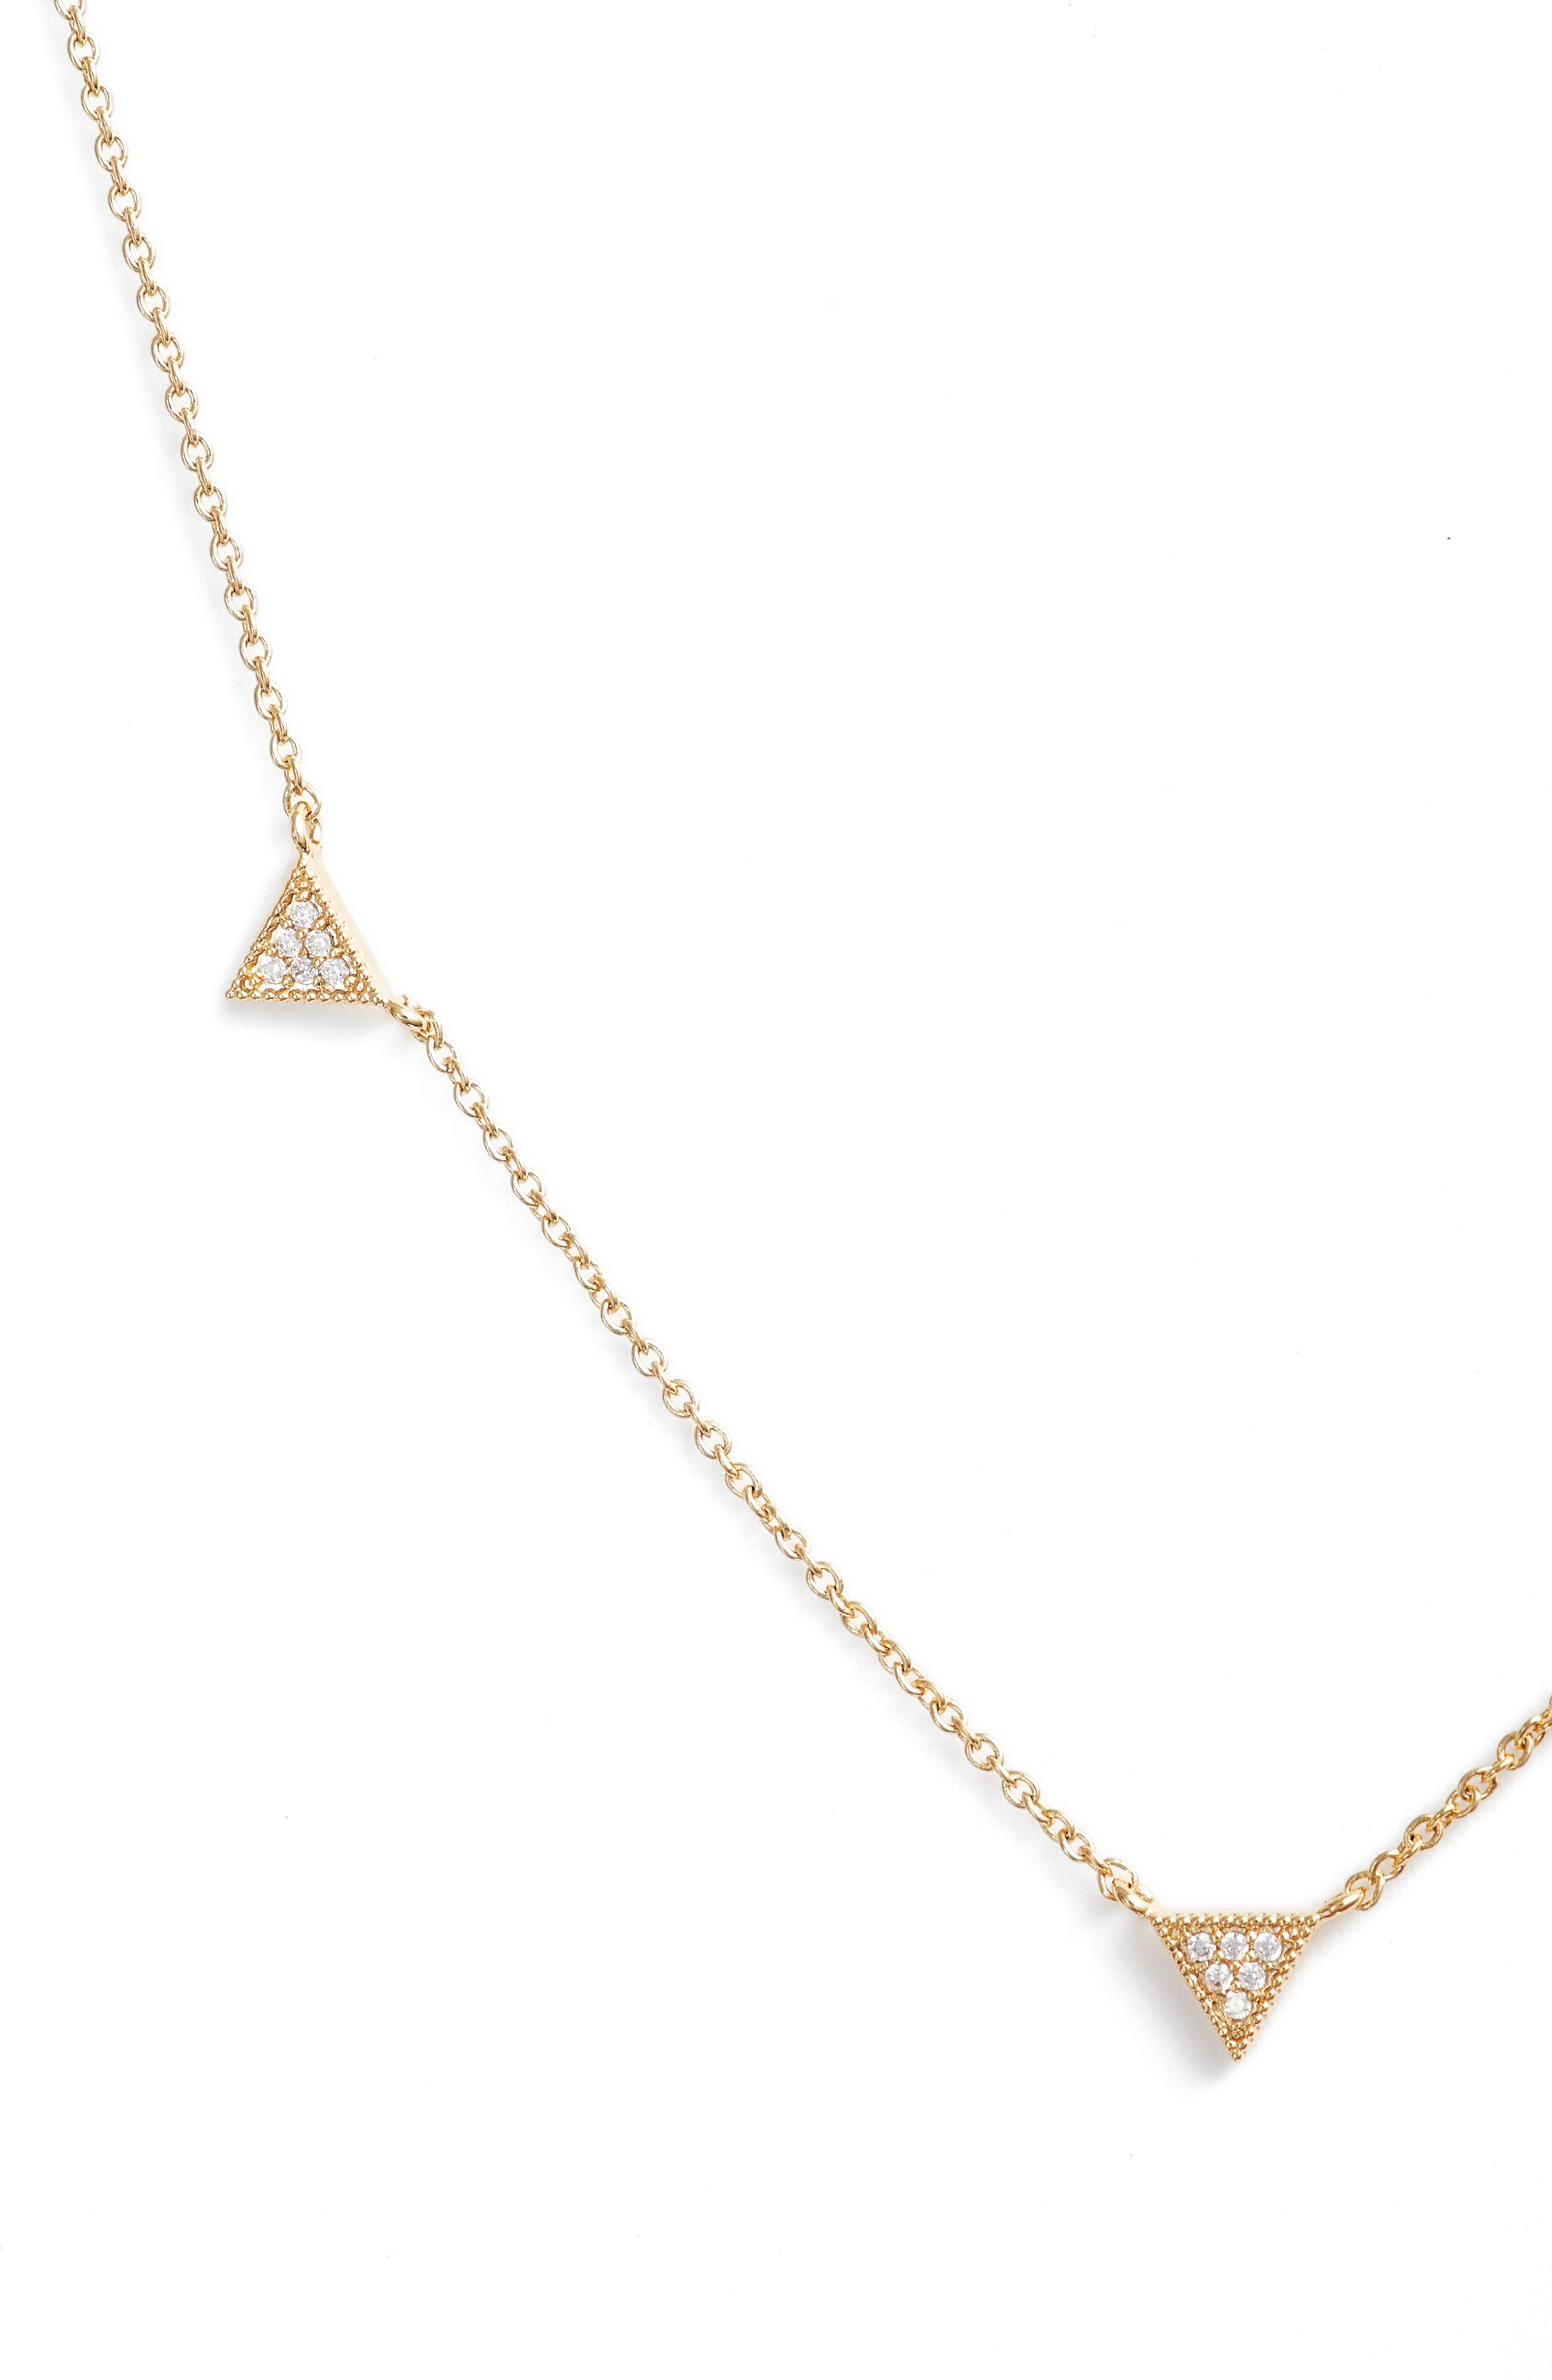 JULES SMITH Cubic Zirconia Triangle Collar Necklace, Main, color, 710